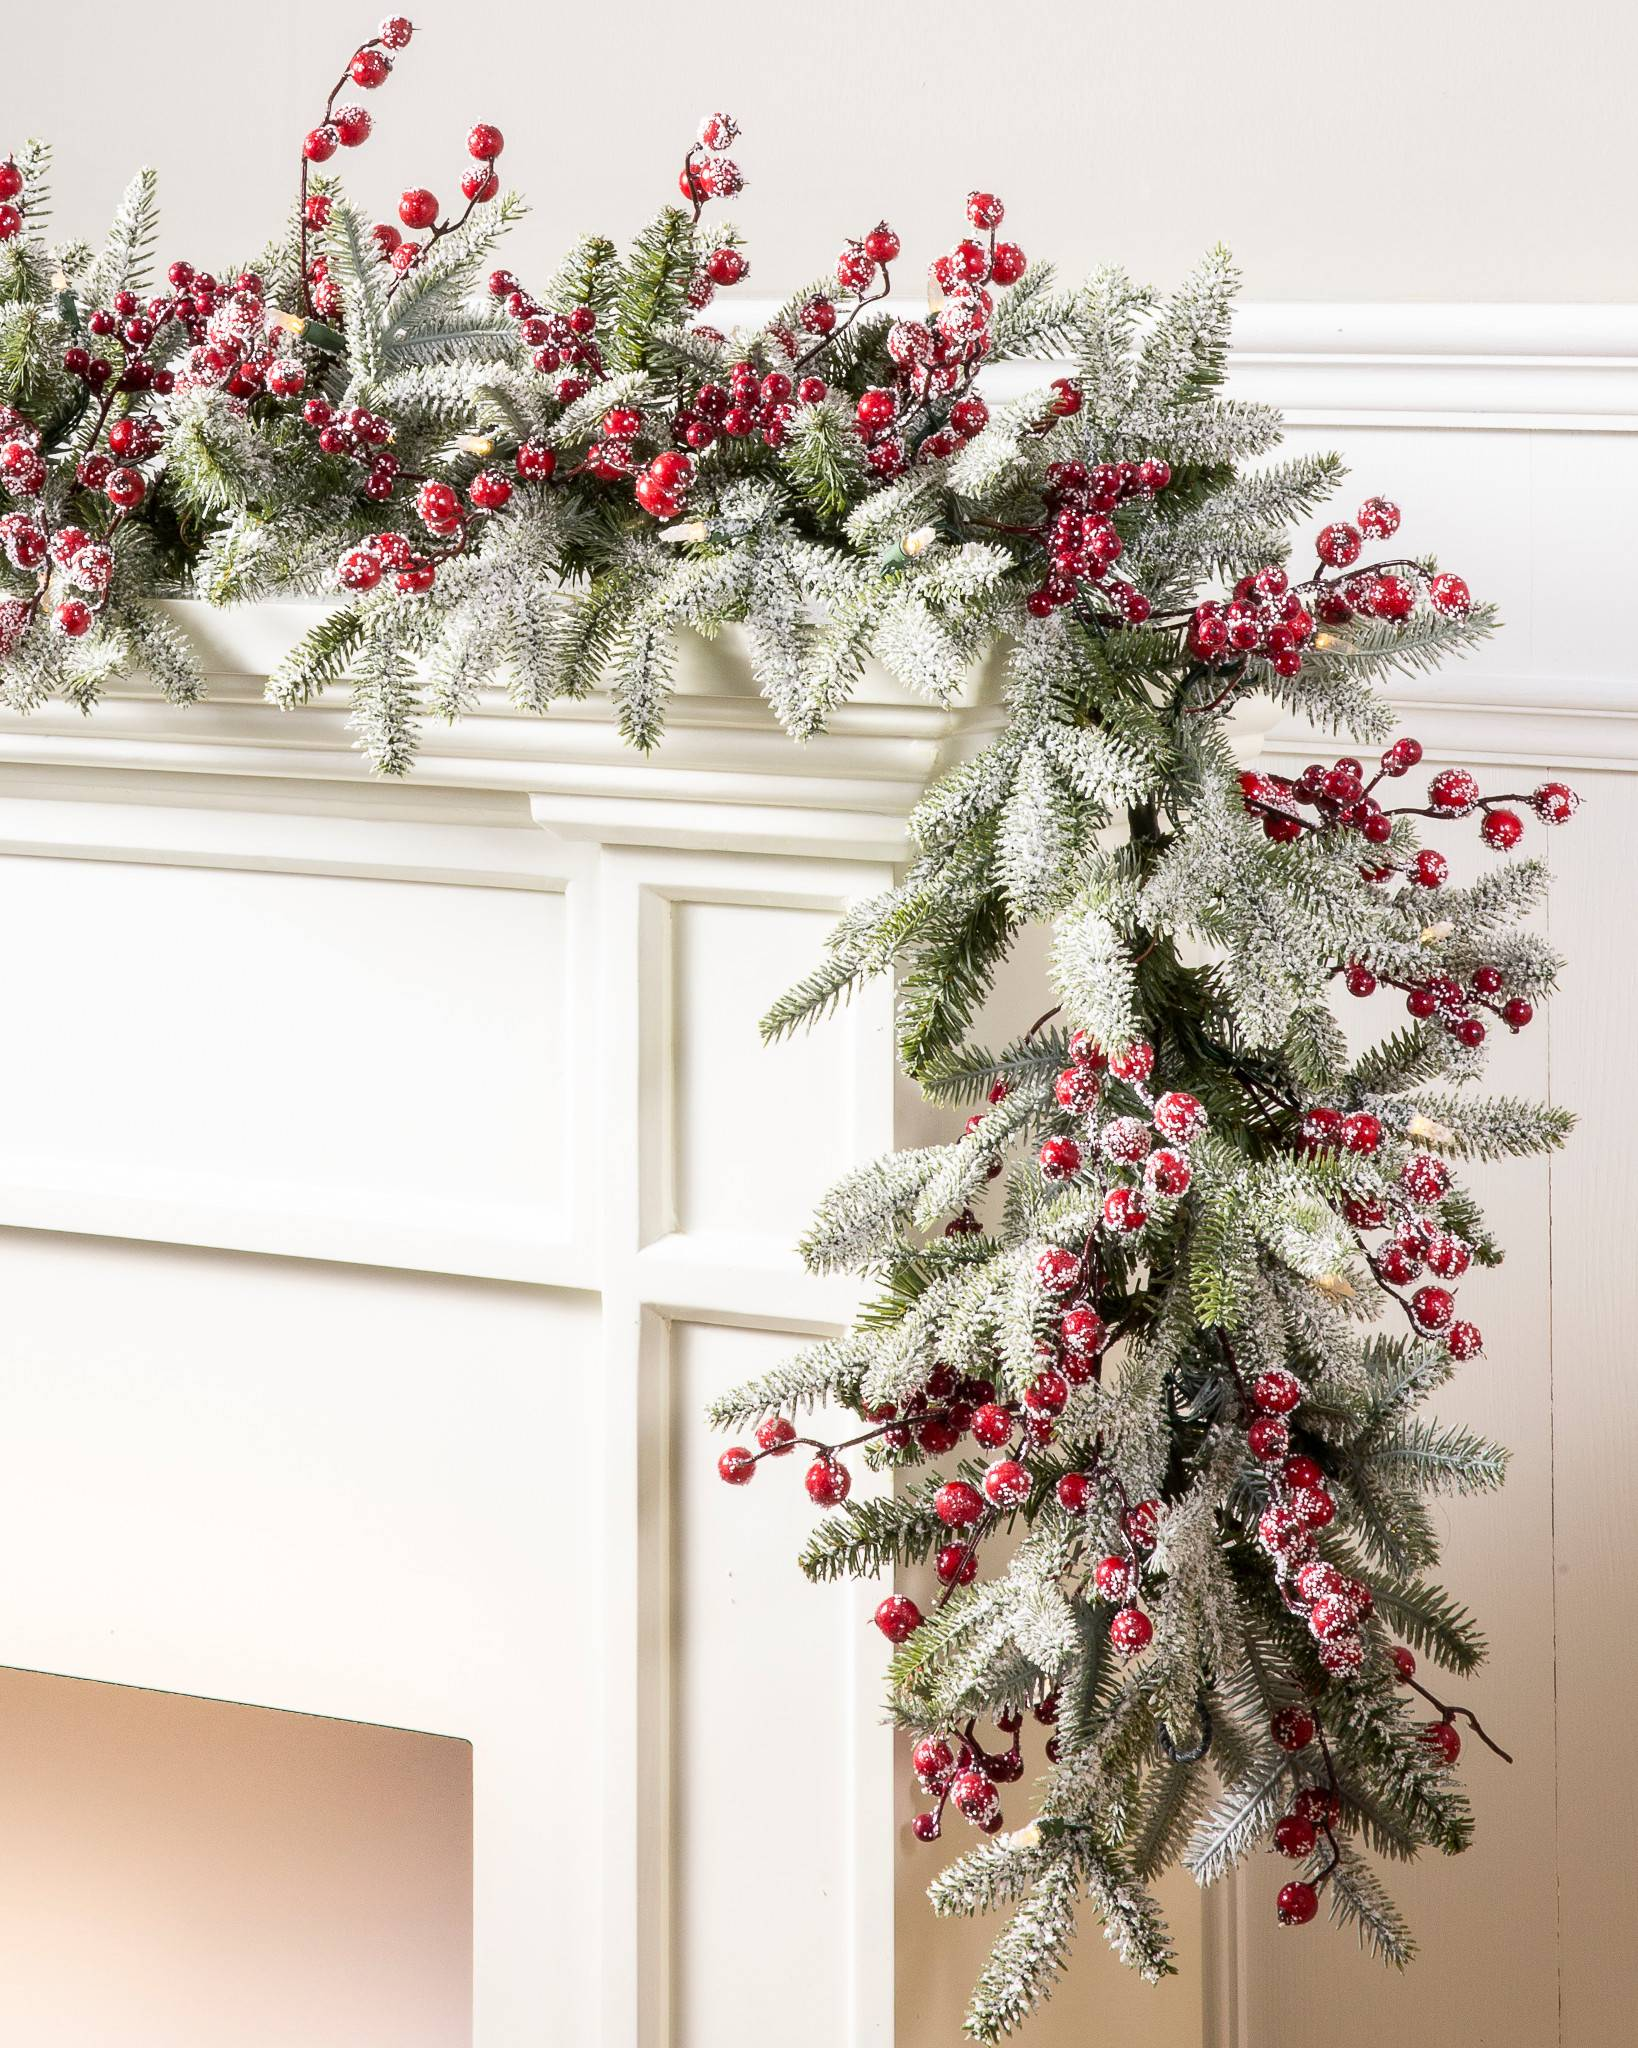 red berry frosted fraser fir garland - Holiday Time Christmas Decor 9 Flocked Garland Green